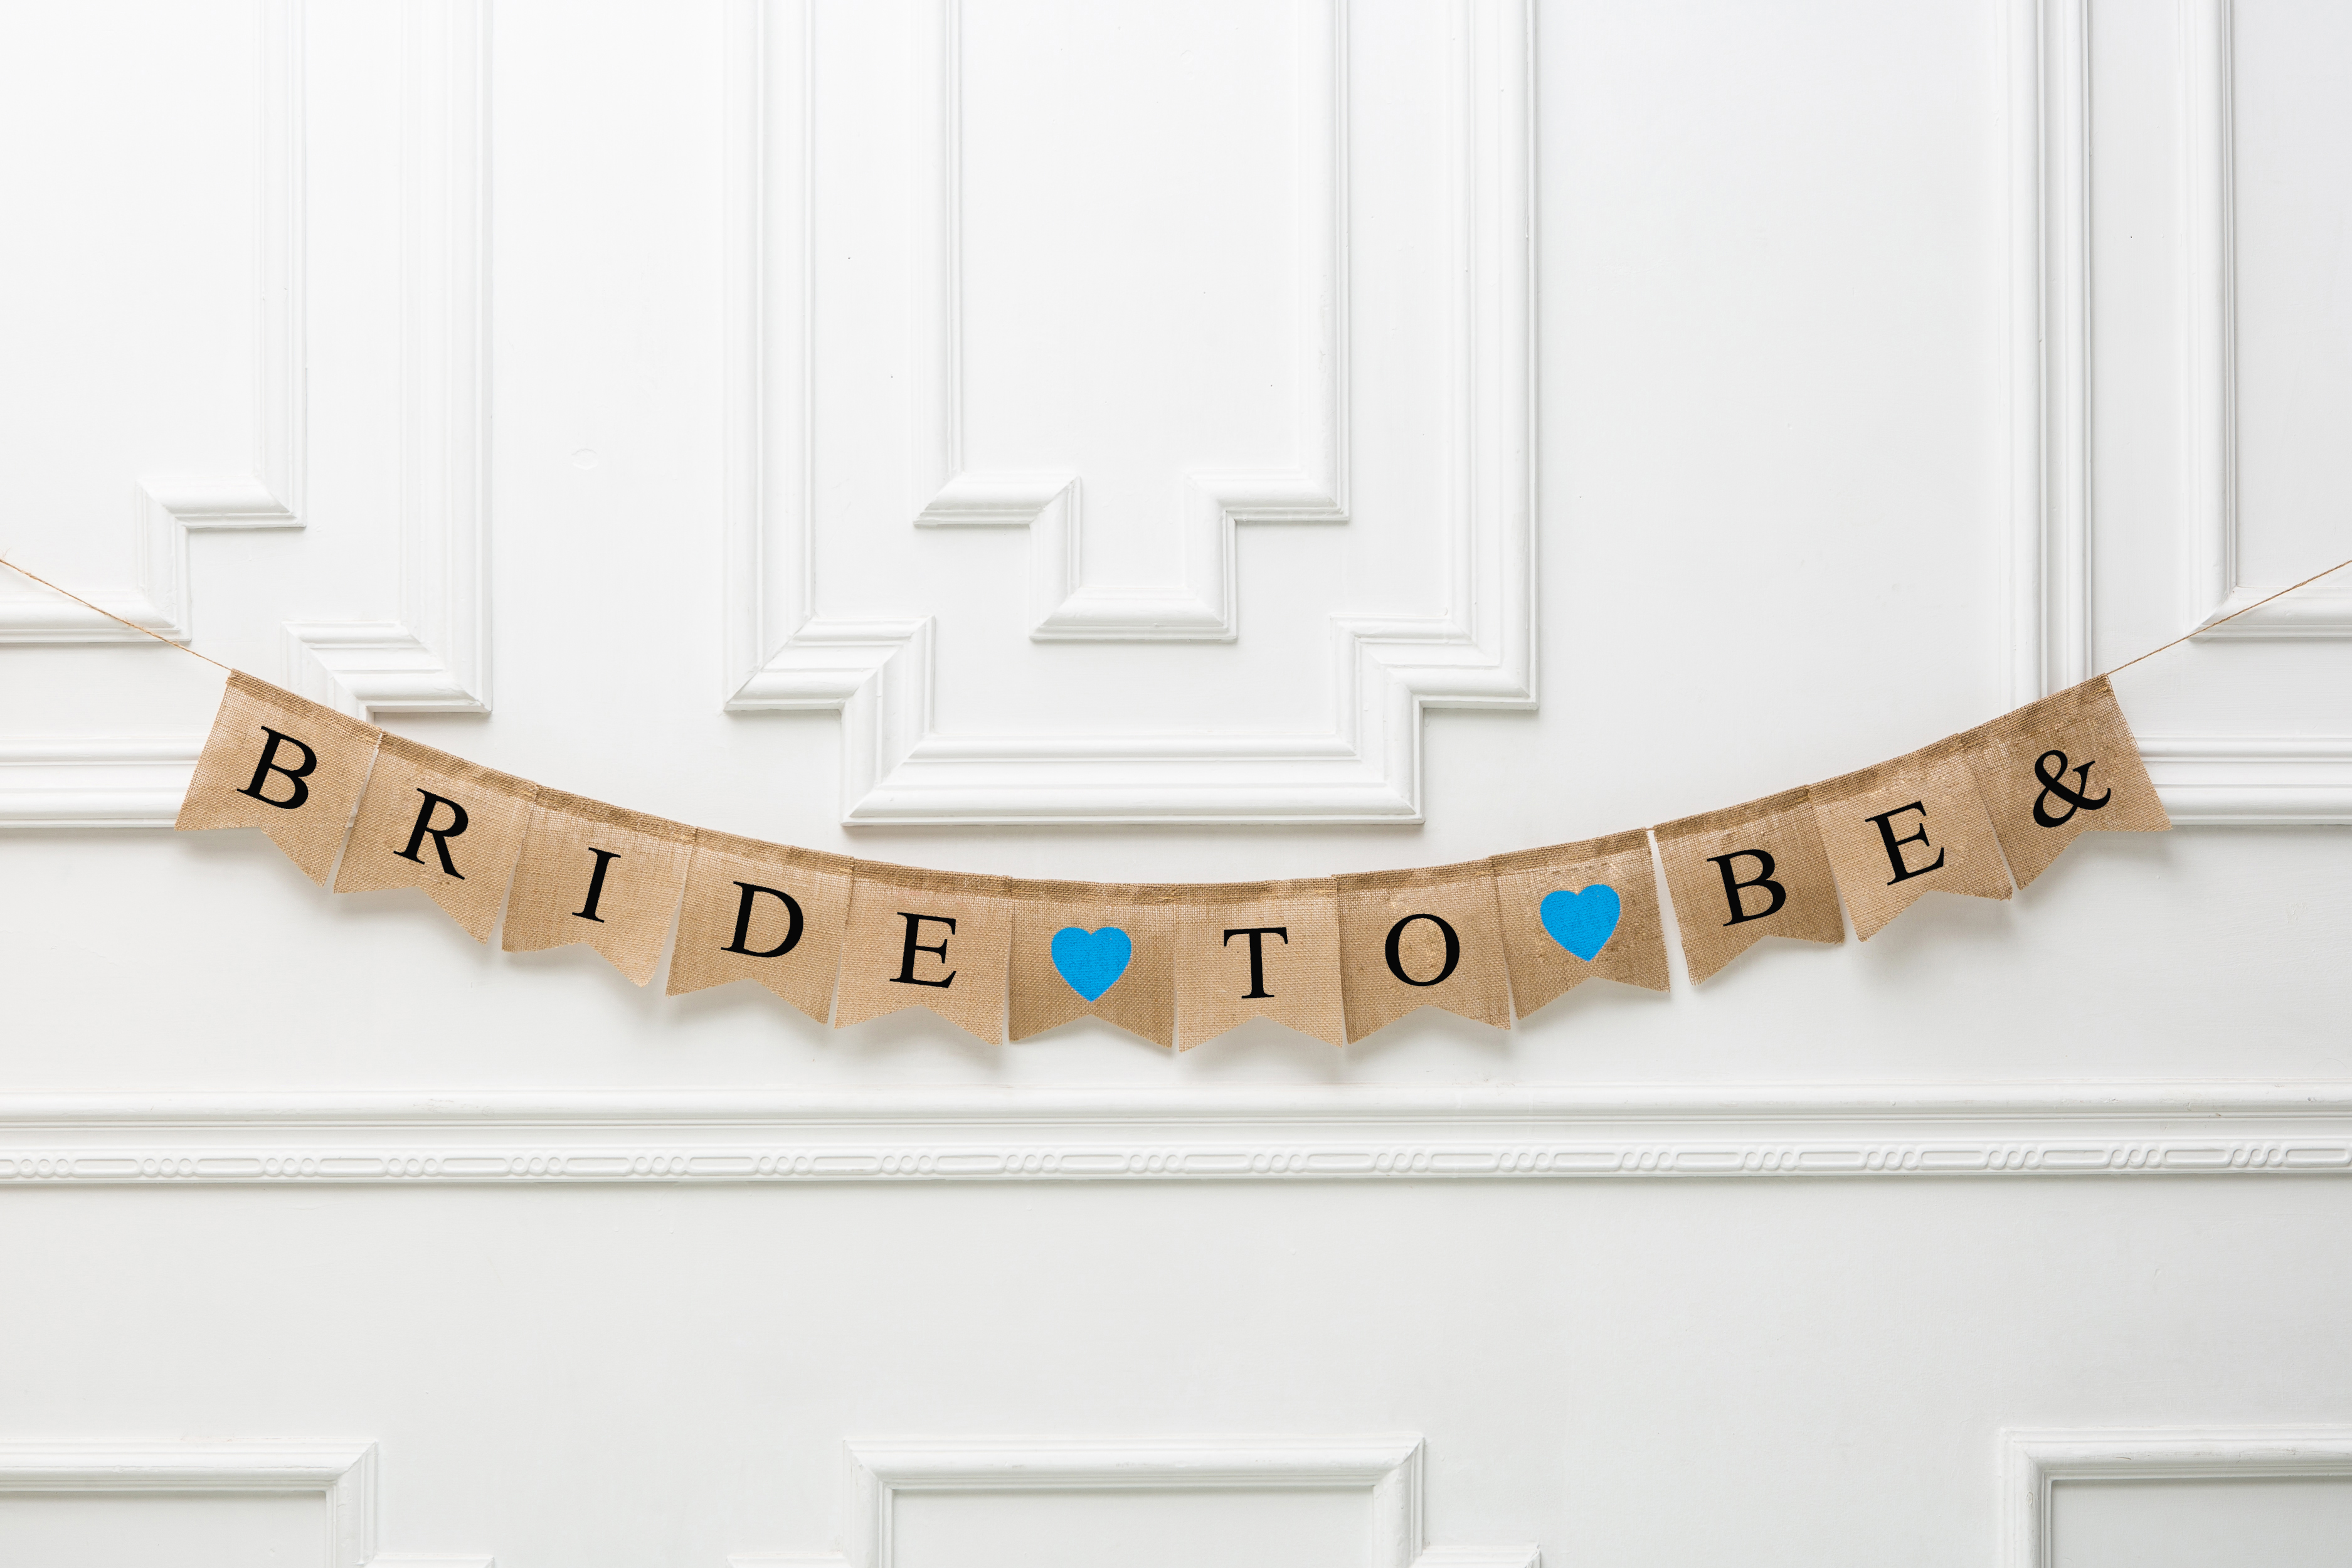 Cards Garland Rustic Wedding Burlap Banner Bunting Party Sign Photo Props